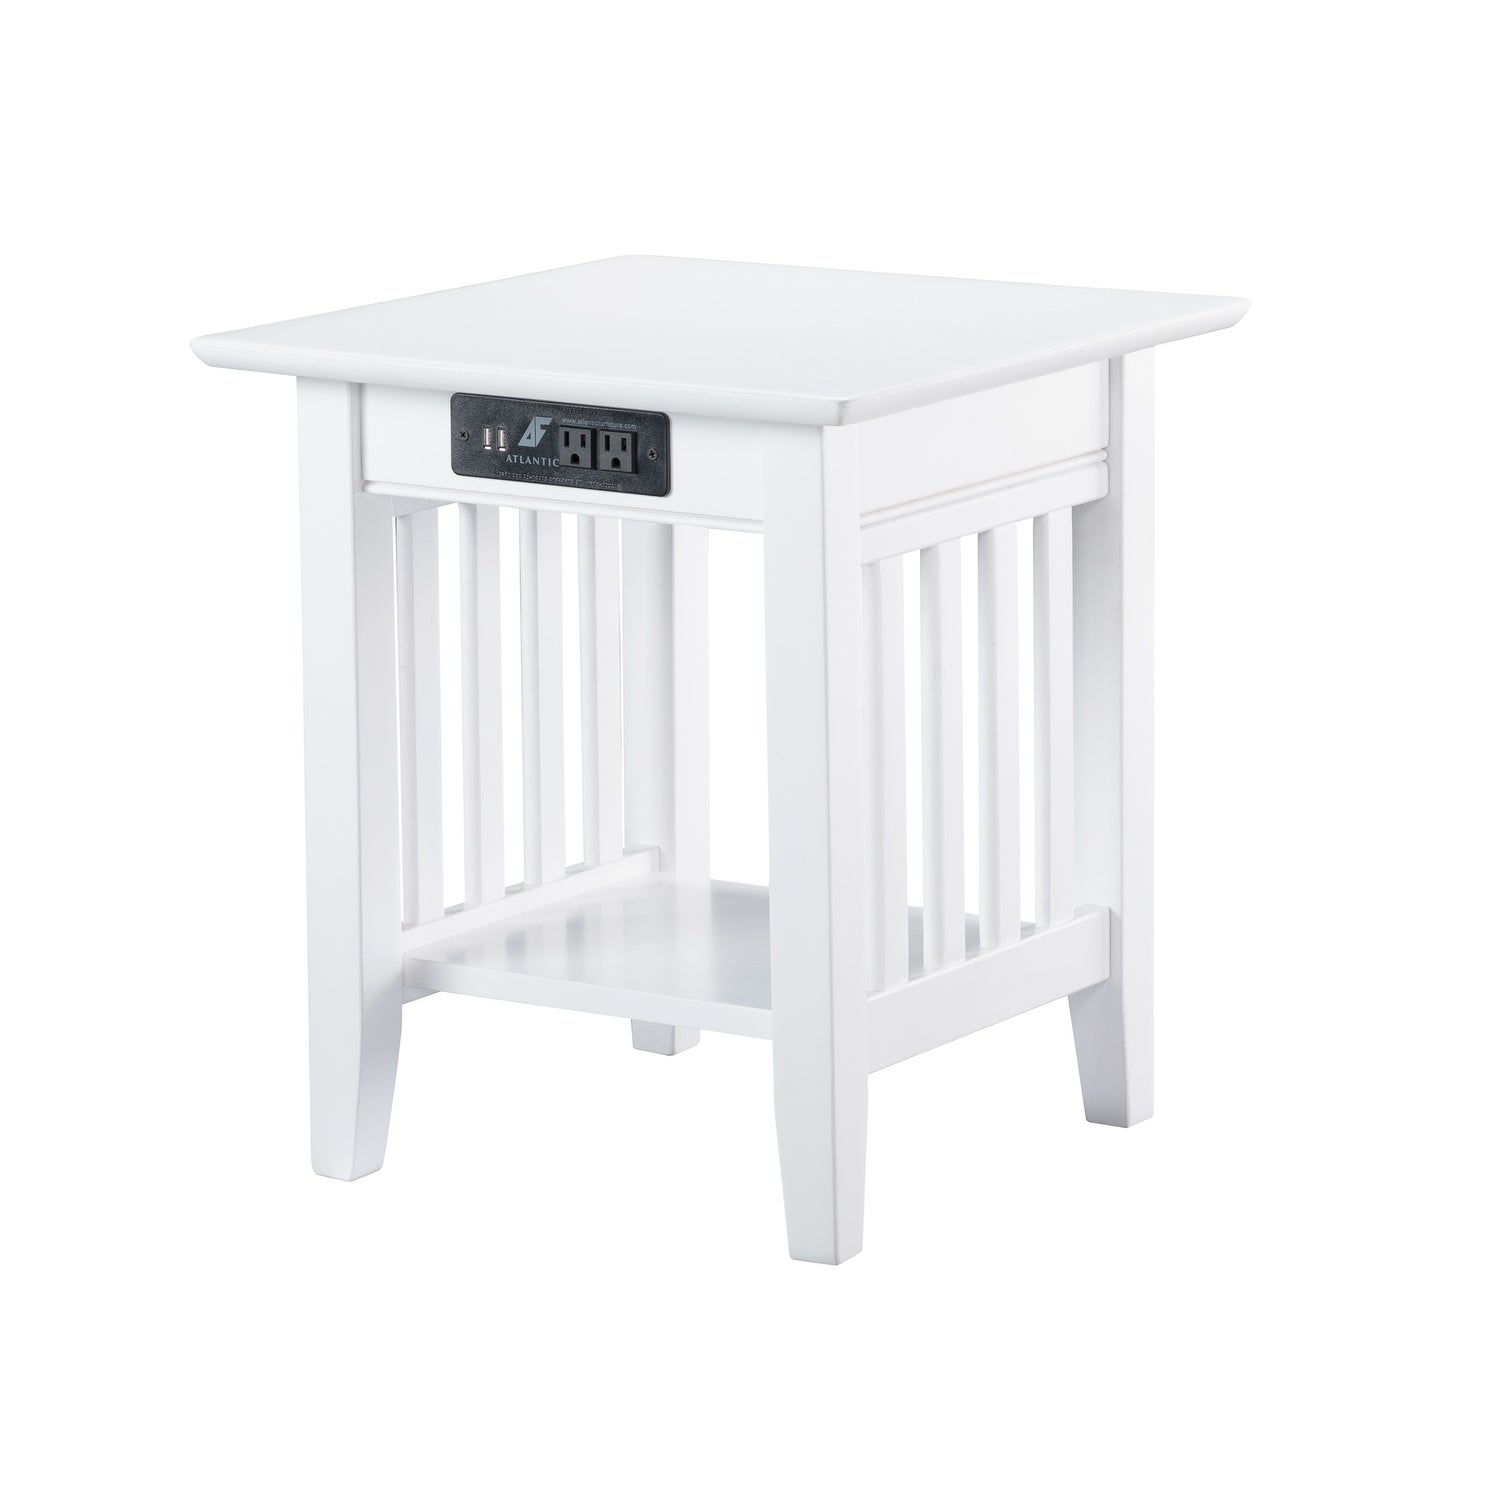 Atlantic furniture mission white rubberwood square end table with charging station